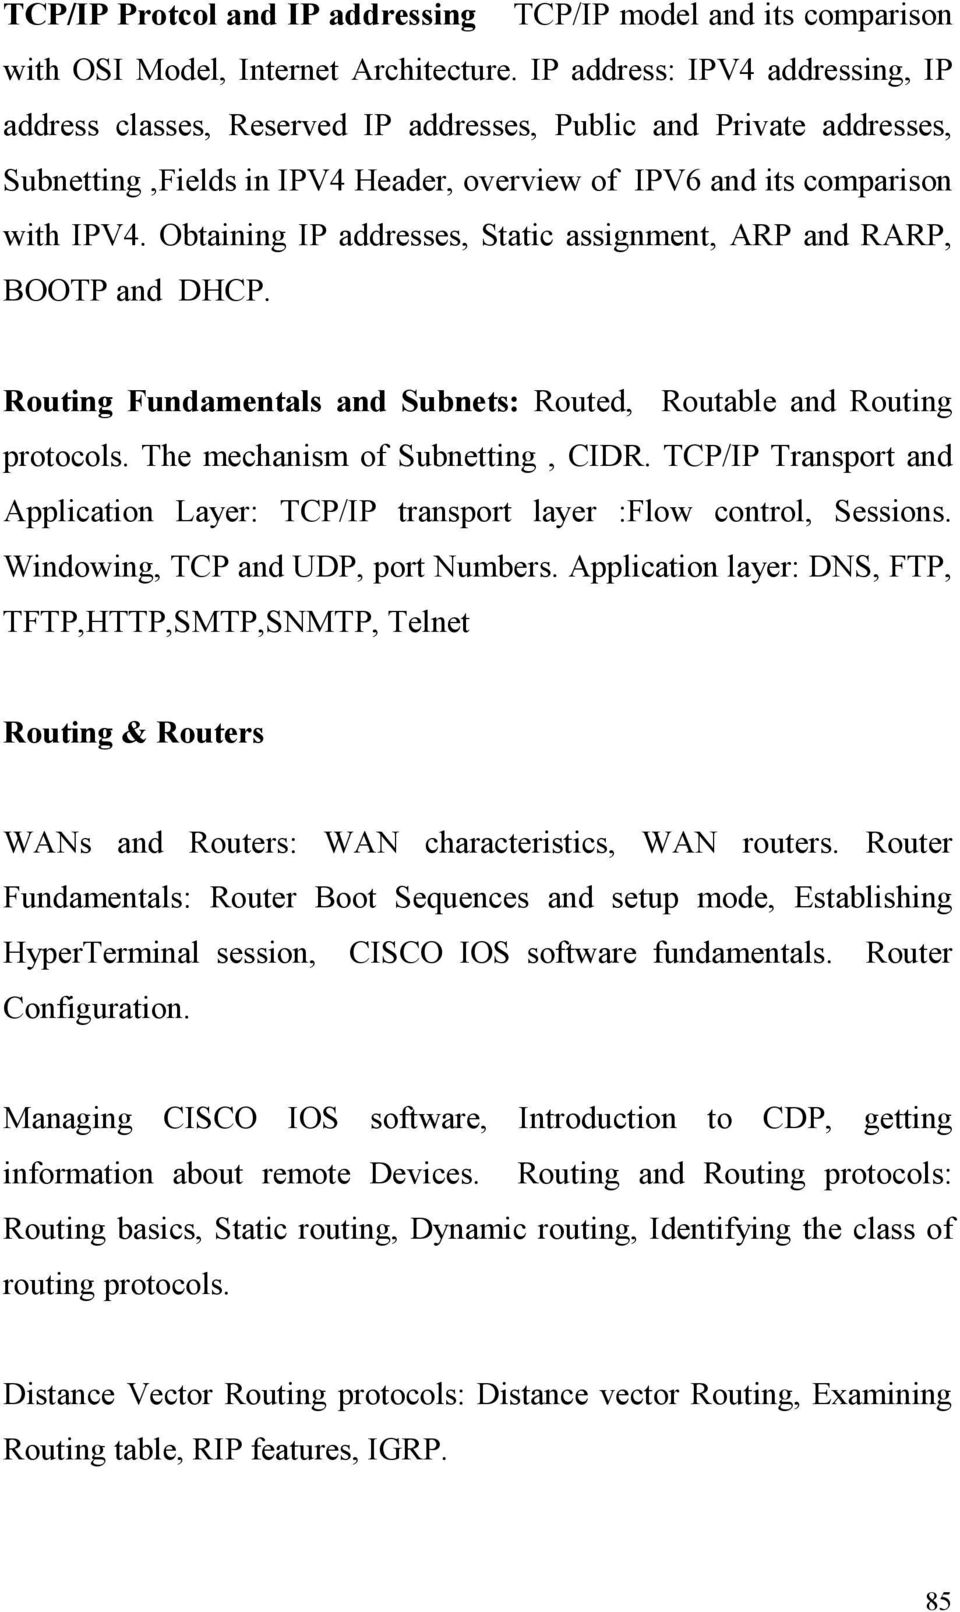 Obtaining IP addresses, Static assignment, ARP and RARP, BOOTP and DHCP. Routing Fundamentals and Subnets: Routed, Routable and Routing protocols. The mechanism of Subnetting, CIDR.